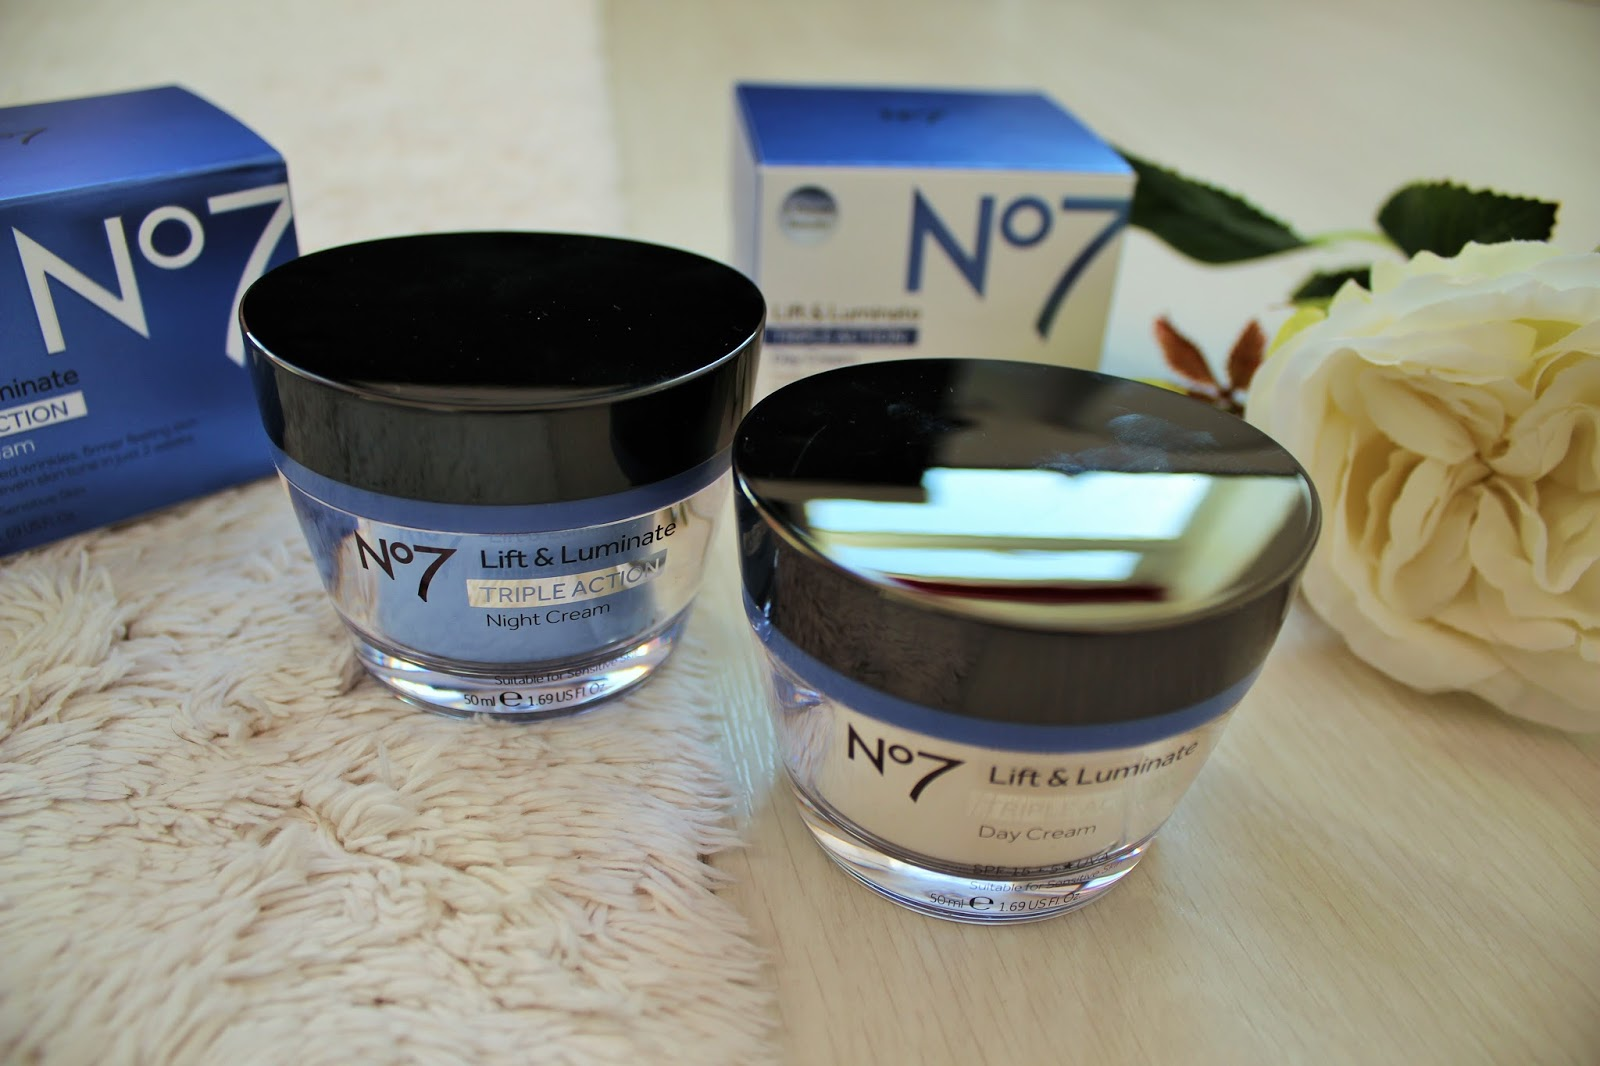 No7 Lift & Luminate Triple Action Range - First Impressions and Giveaway 10